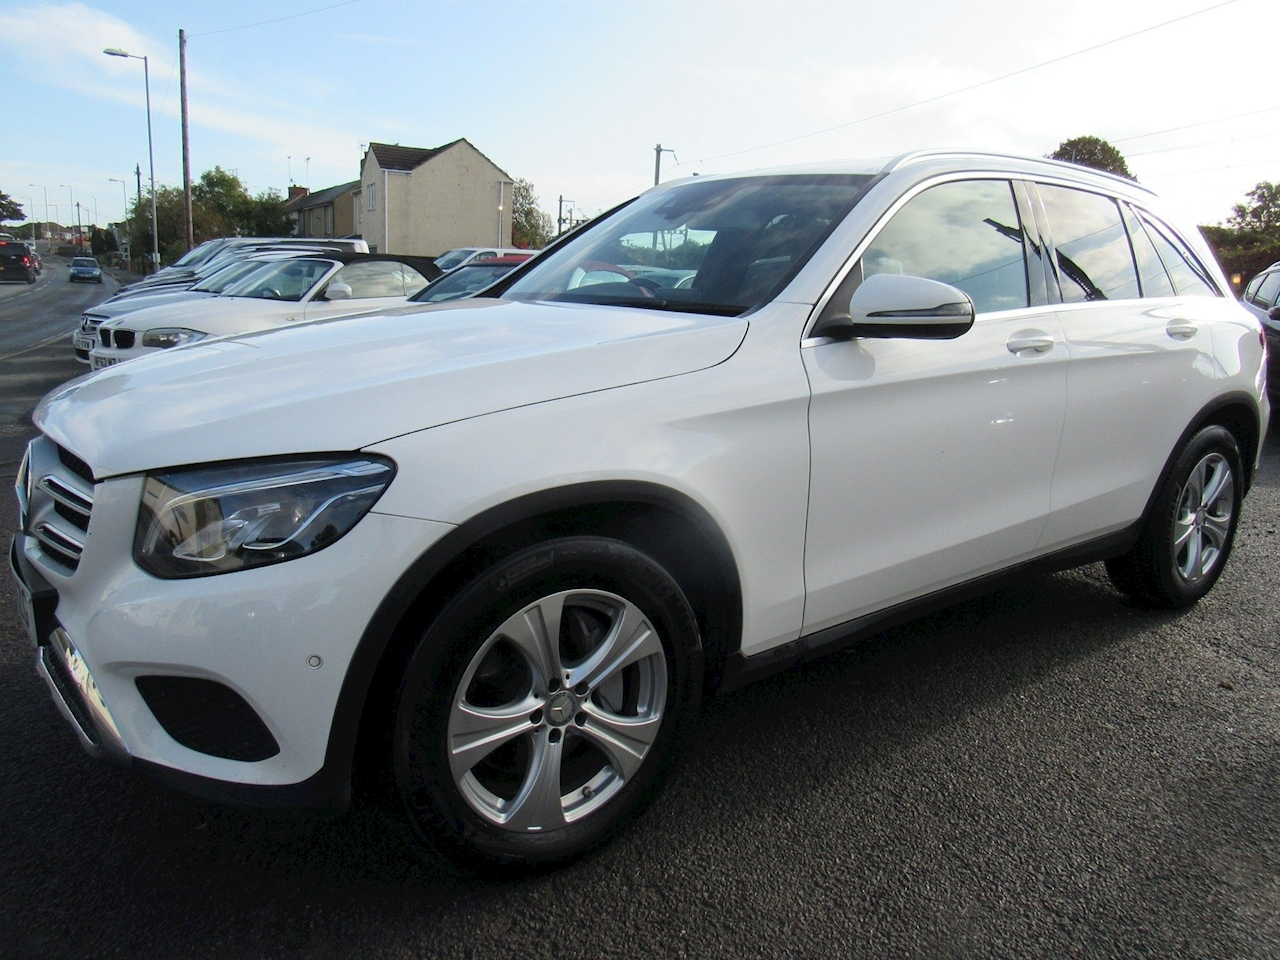 Mercedes-Benz Glc-Class Glc 220 D 4Matic Sport Estate 2.1 Automatic Diesel